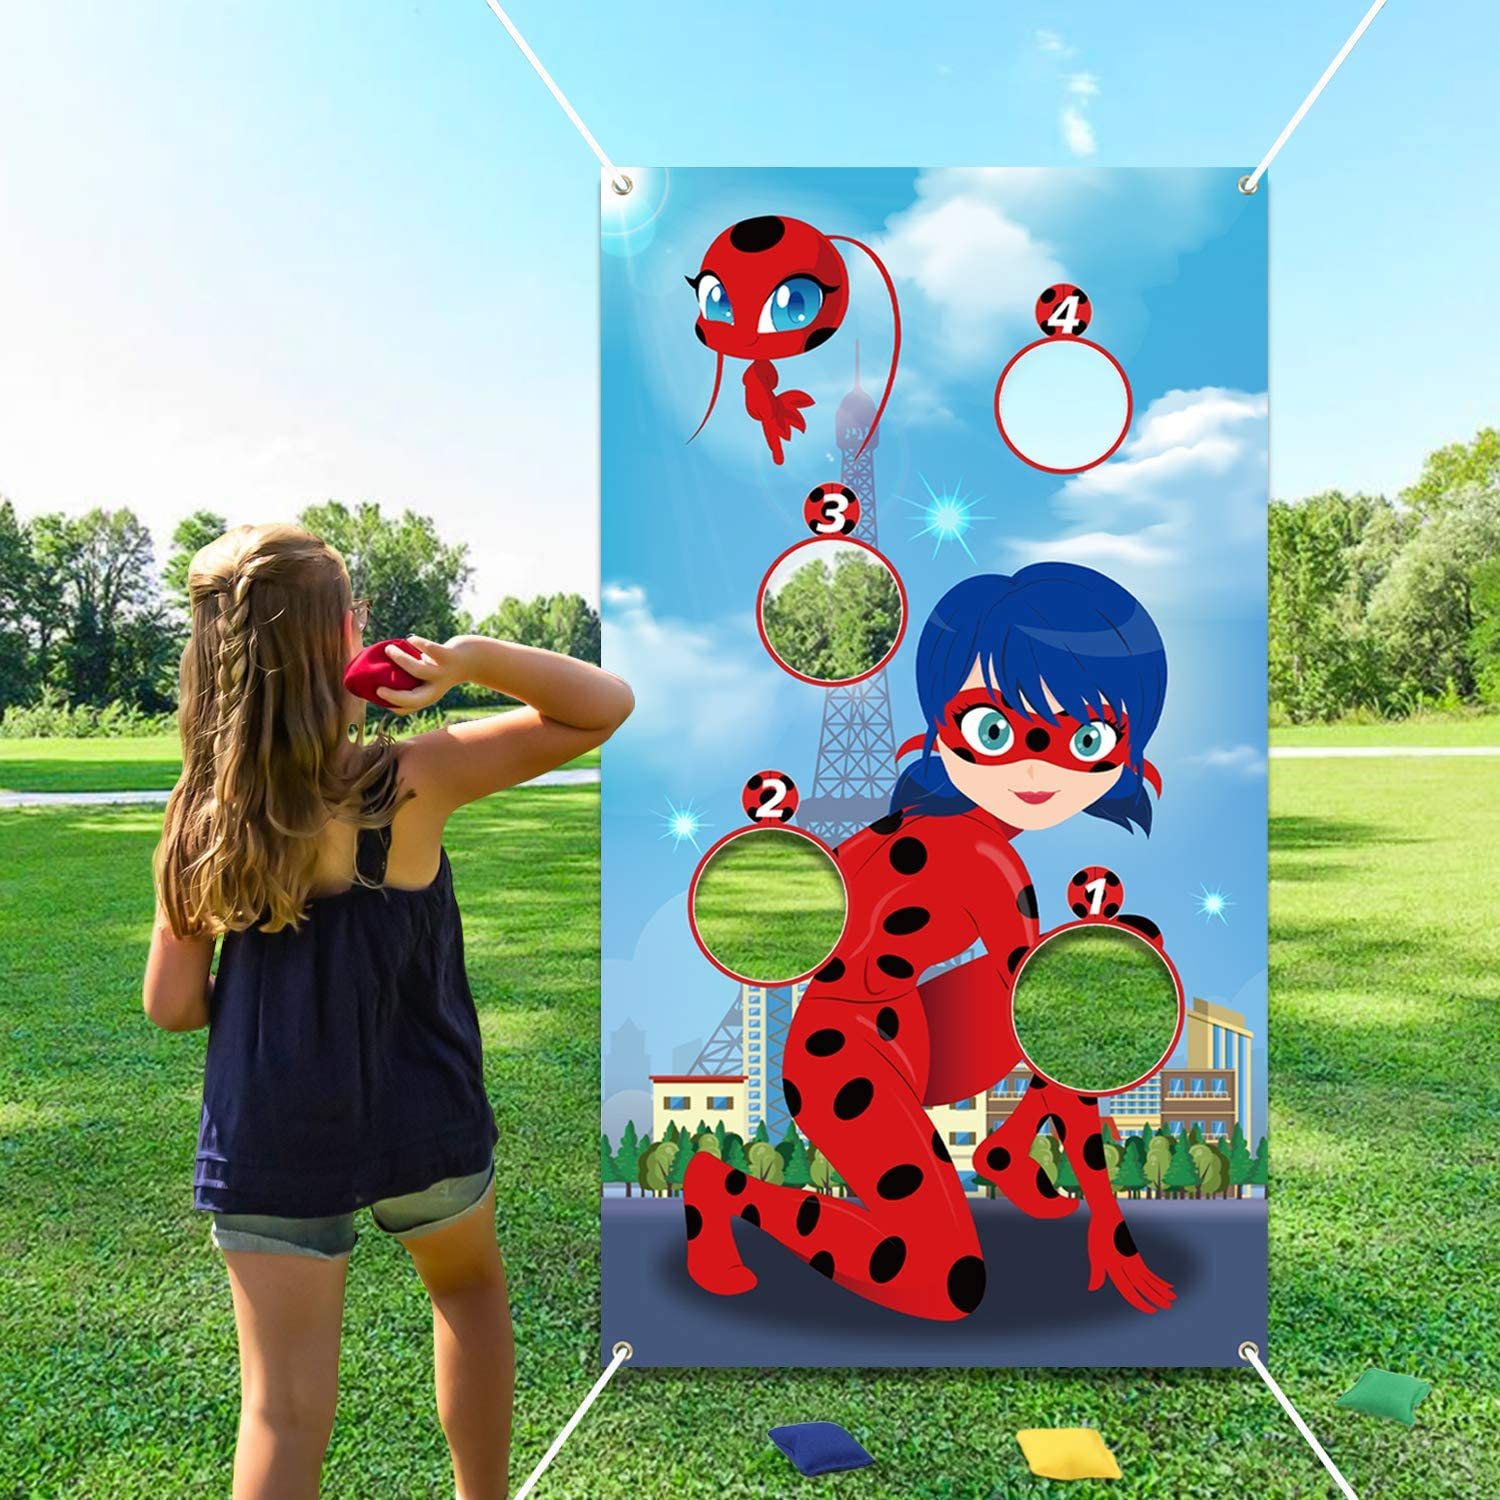 Ladybug Themed Party Decoration Supplies for Girls PANTIDE Ladybug Toss Games with 4 Bean Bags Ladybug Birthday Indoor Outdoor Party Games Great Throwing Games for Kids and Adults